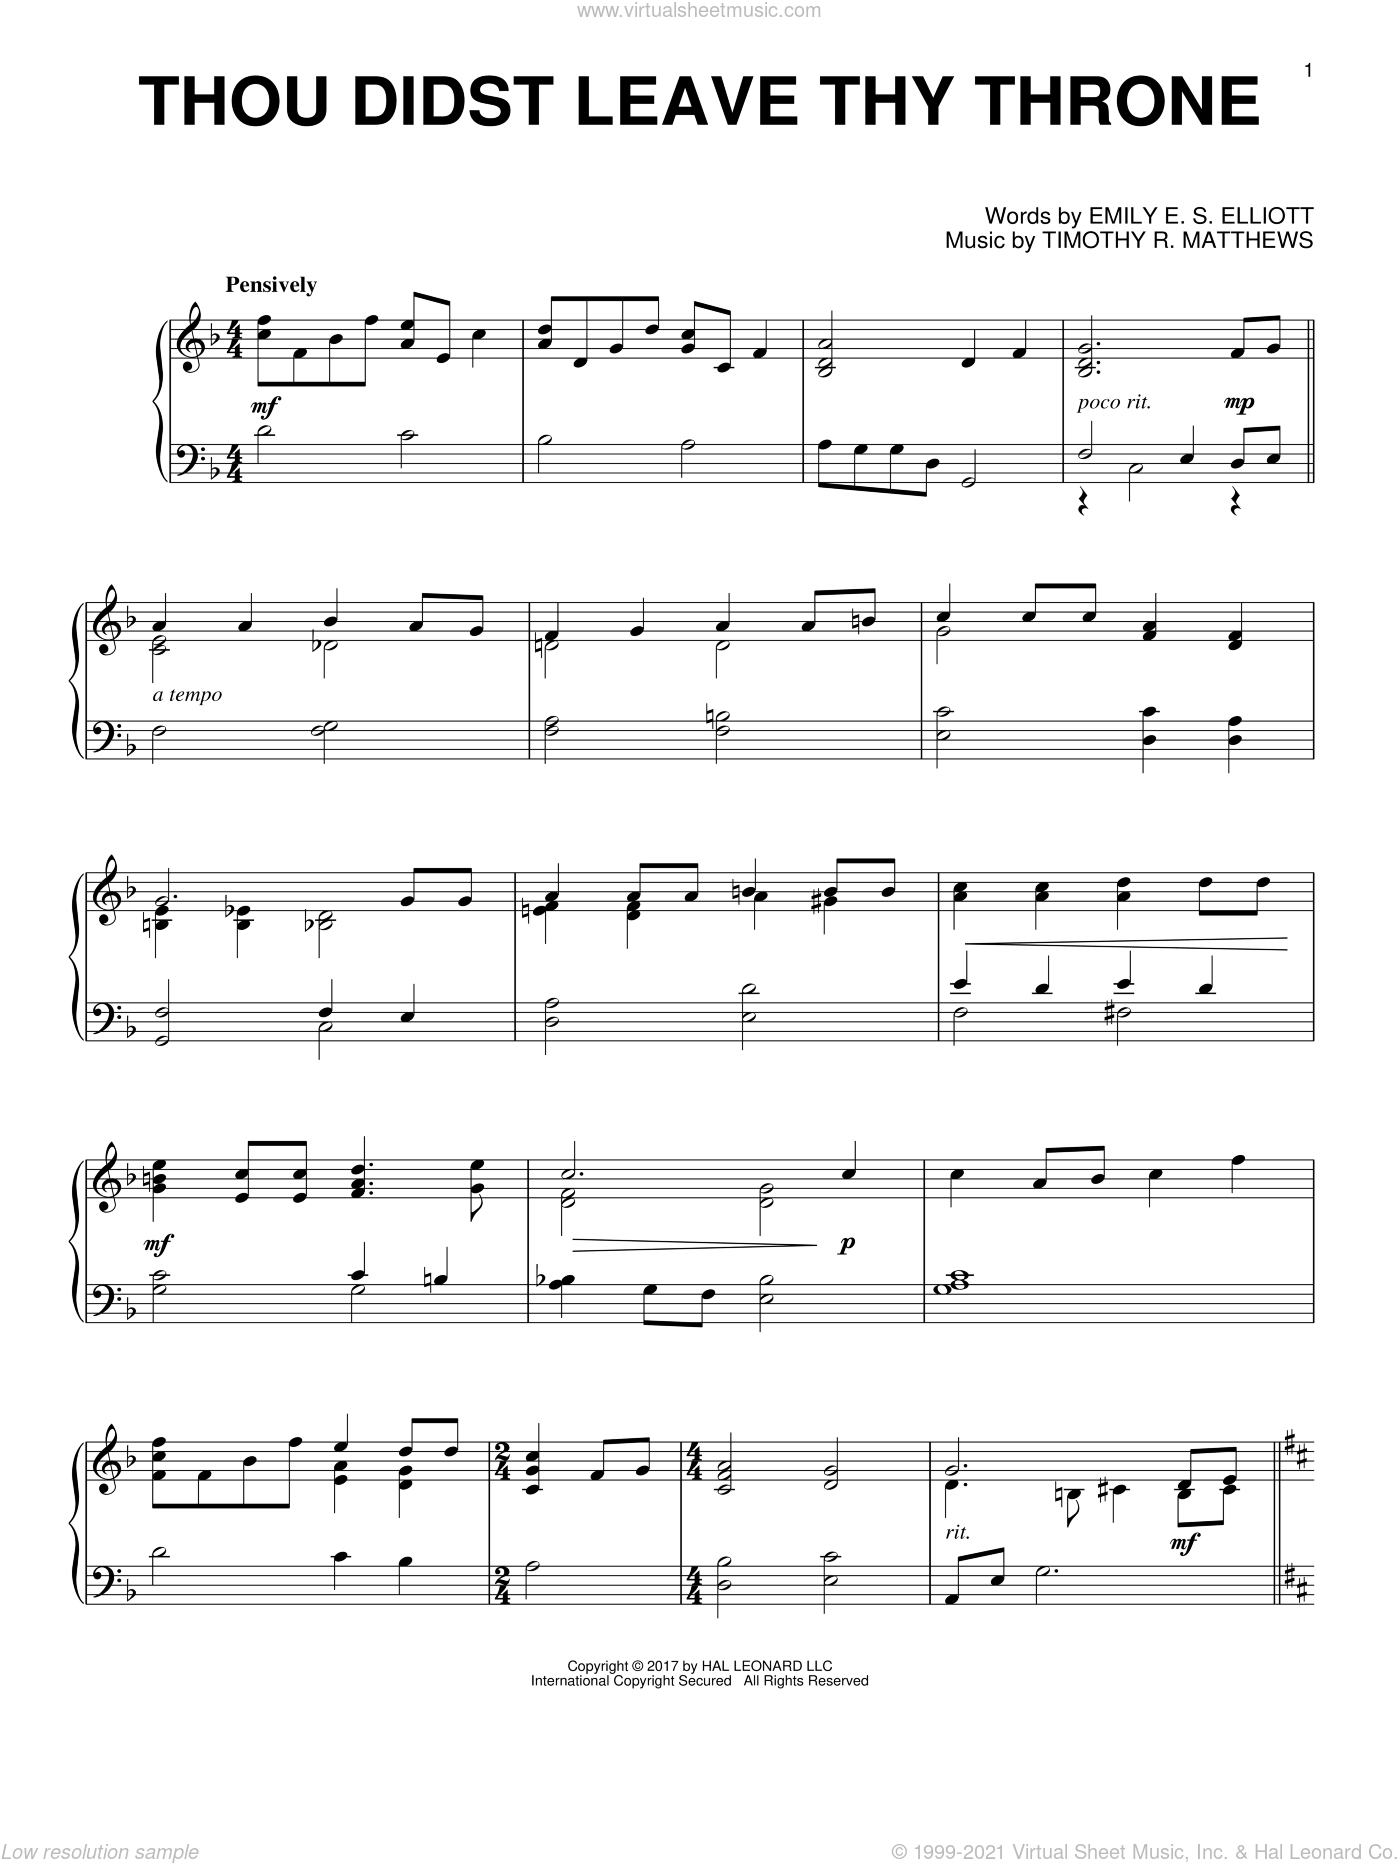 Thou Didst Leave Thy Throne sheet music for piano solo by Timothy R. Matthews. Score Image Preview.